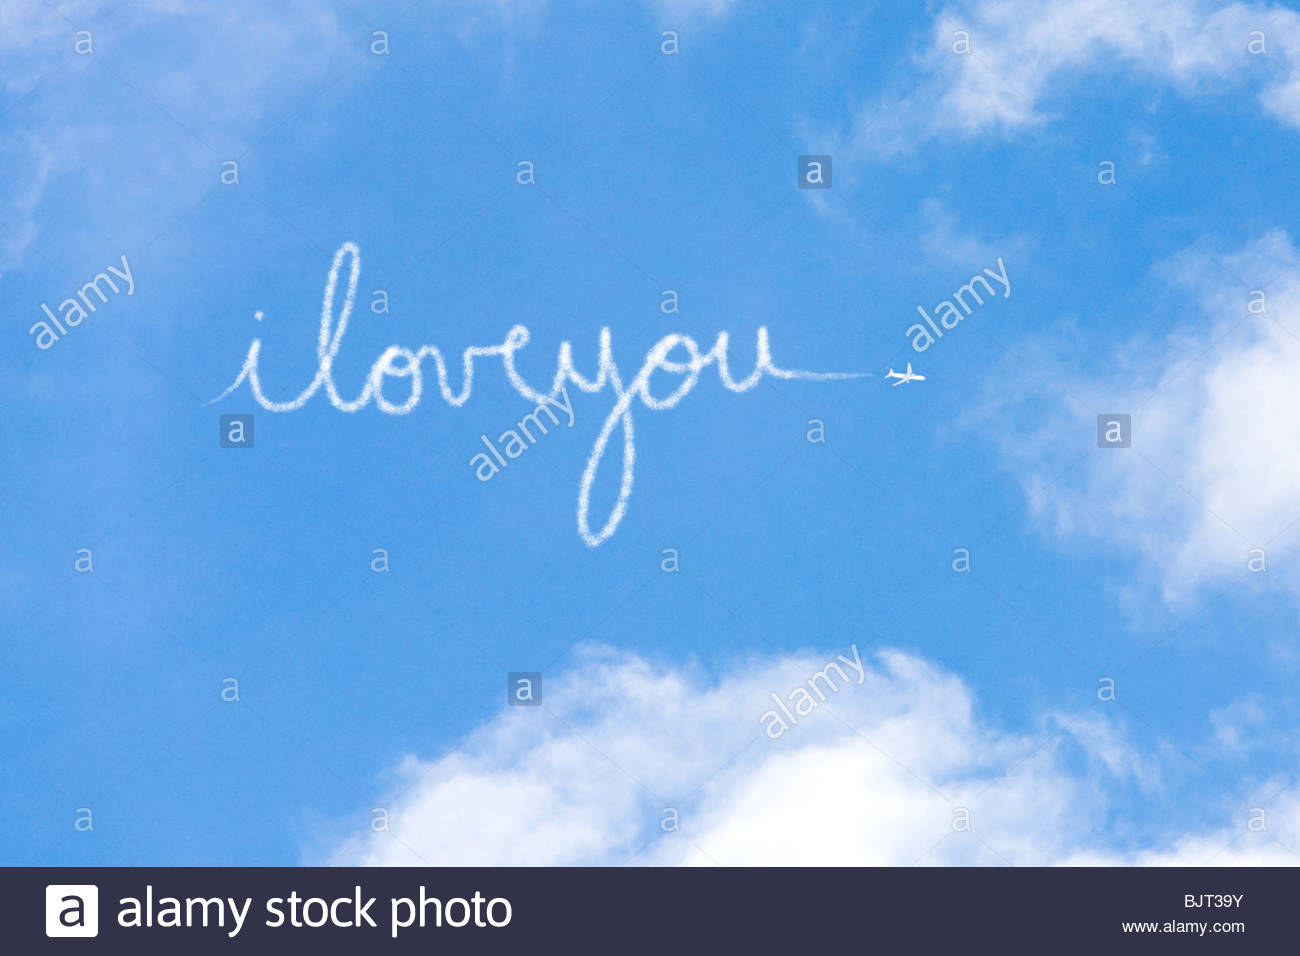 I love you written in vapour - Stock Image